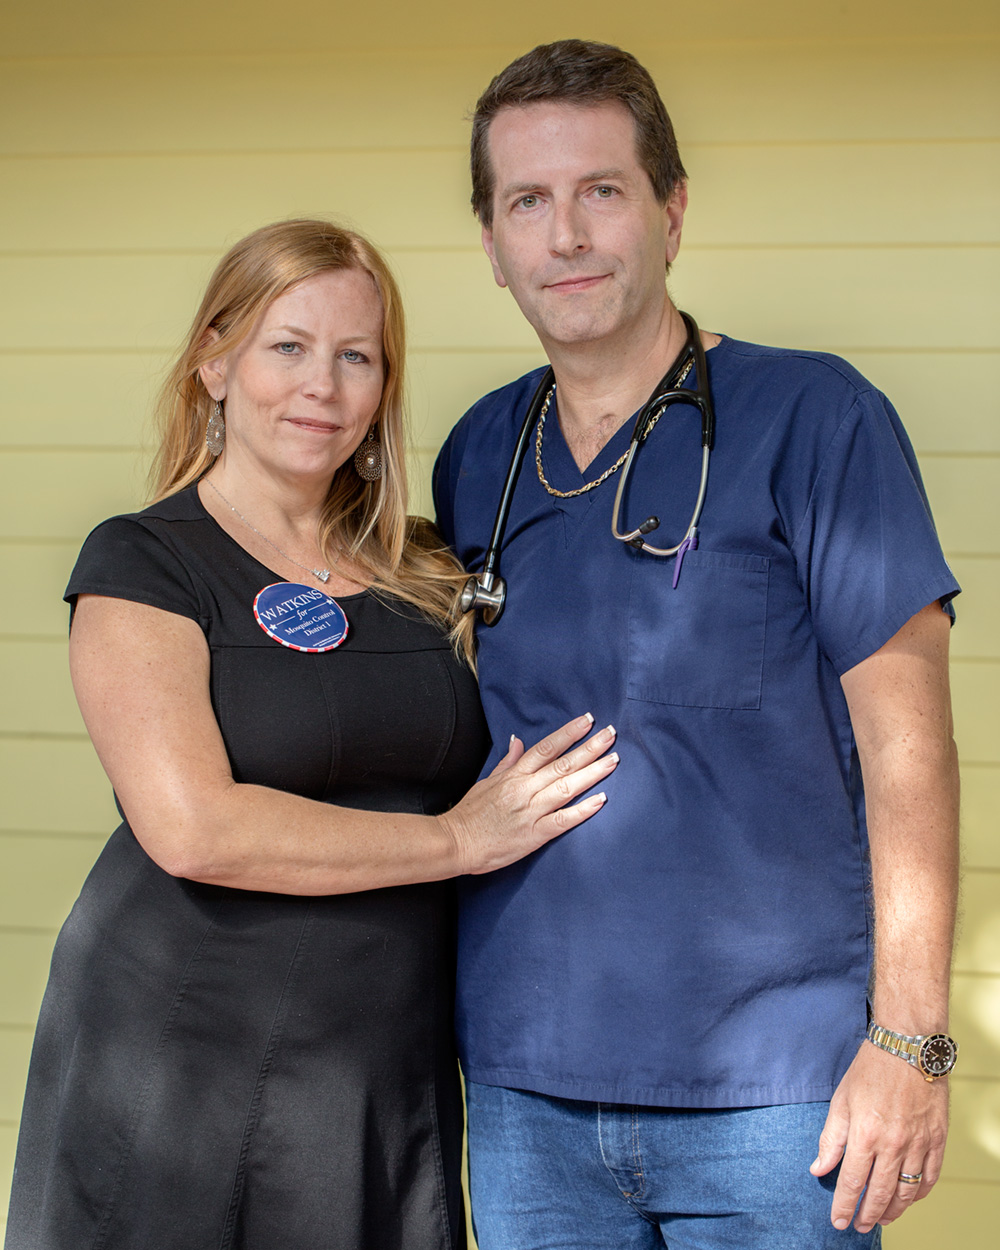 Jack Norris, a physician in Key West whose wife, Kathryn Watkins, is running for the Mosquito Control District Board of Commissioners, said he is concerned that Oxitec mosquitoes will spread antibiotic-resistant bacteria – the insects cannot survive to maturity without the antibiotic tetracycline, which is used to rear them in the lab.